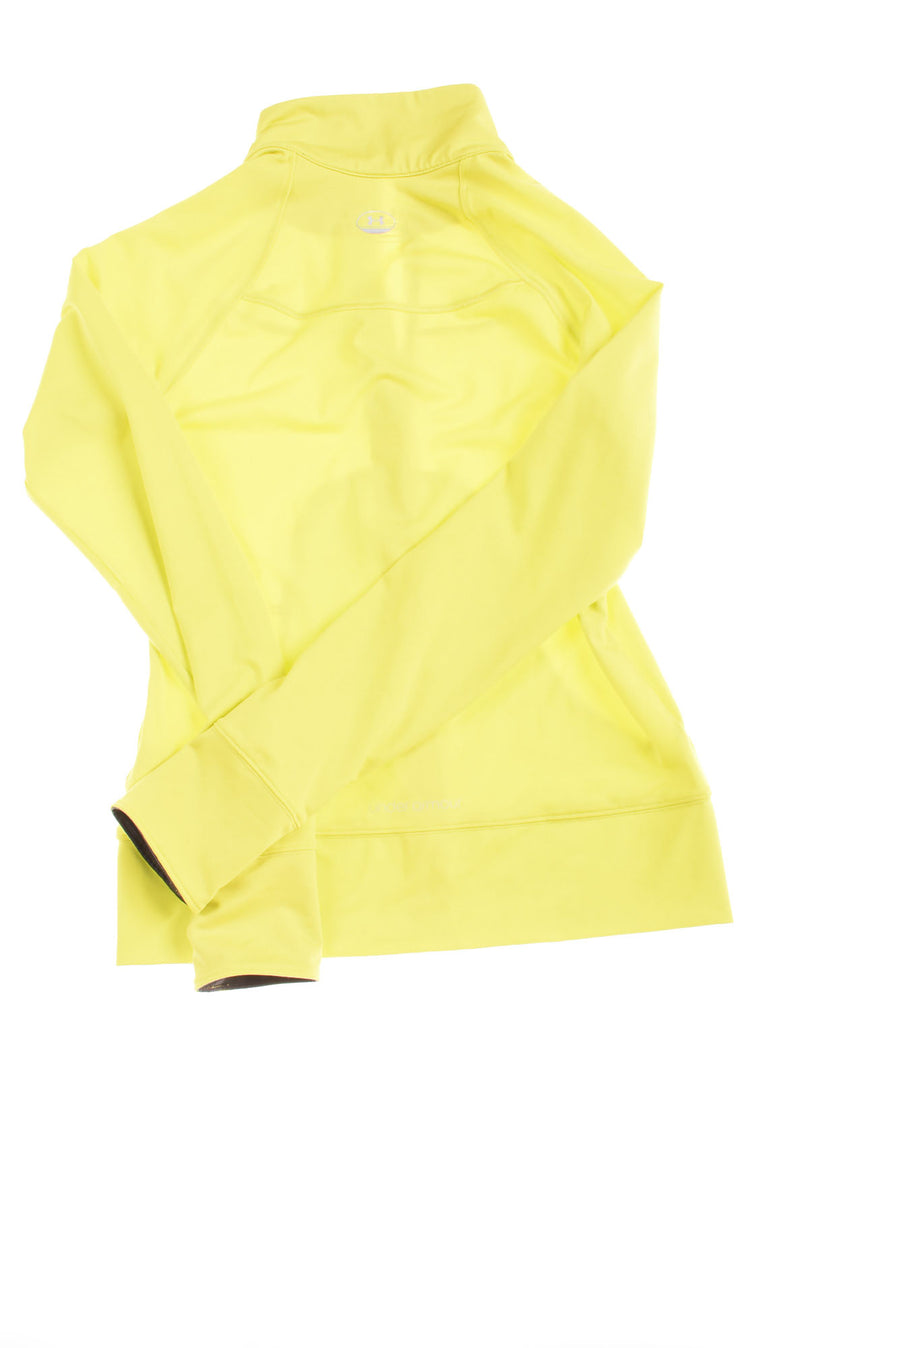 USED Under Armour Women's Jacket Small Yellow